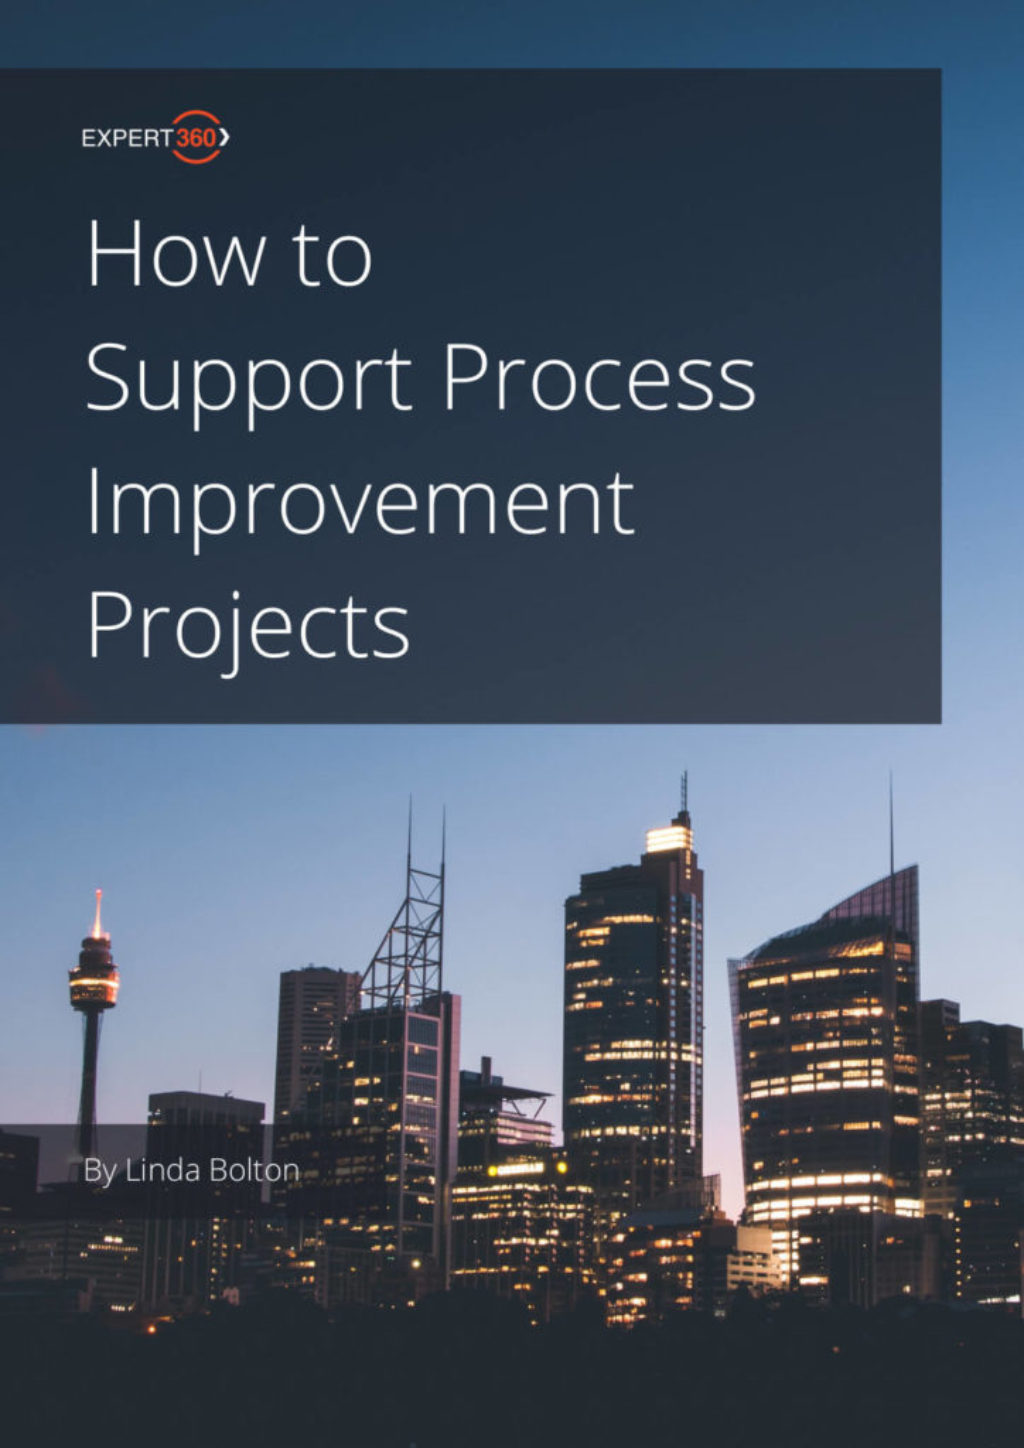 How-to-Support-Process-Improvement-Projects